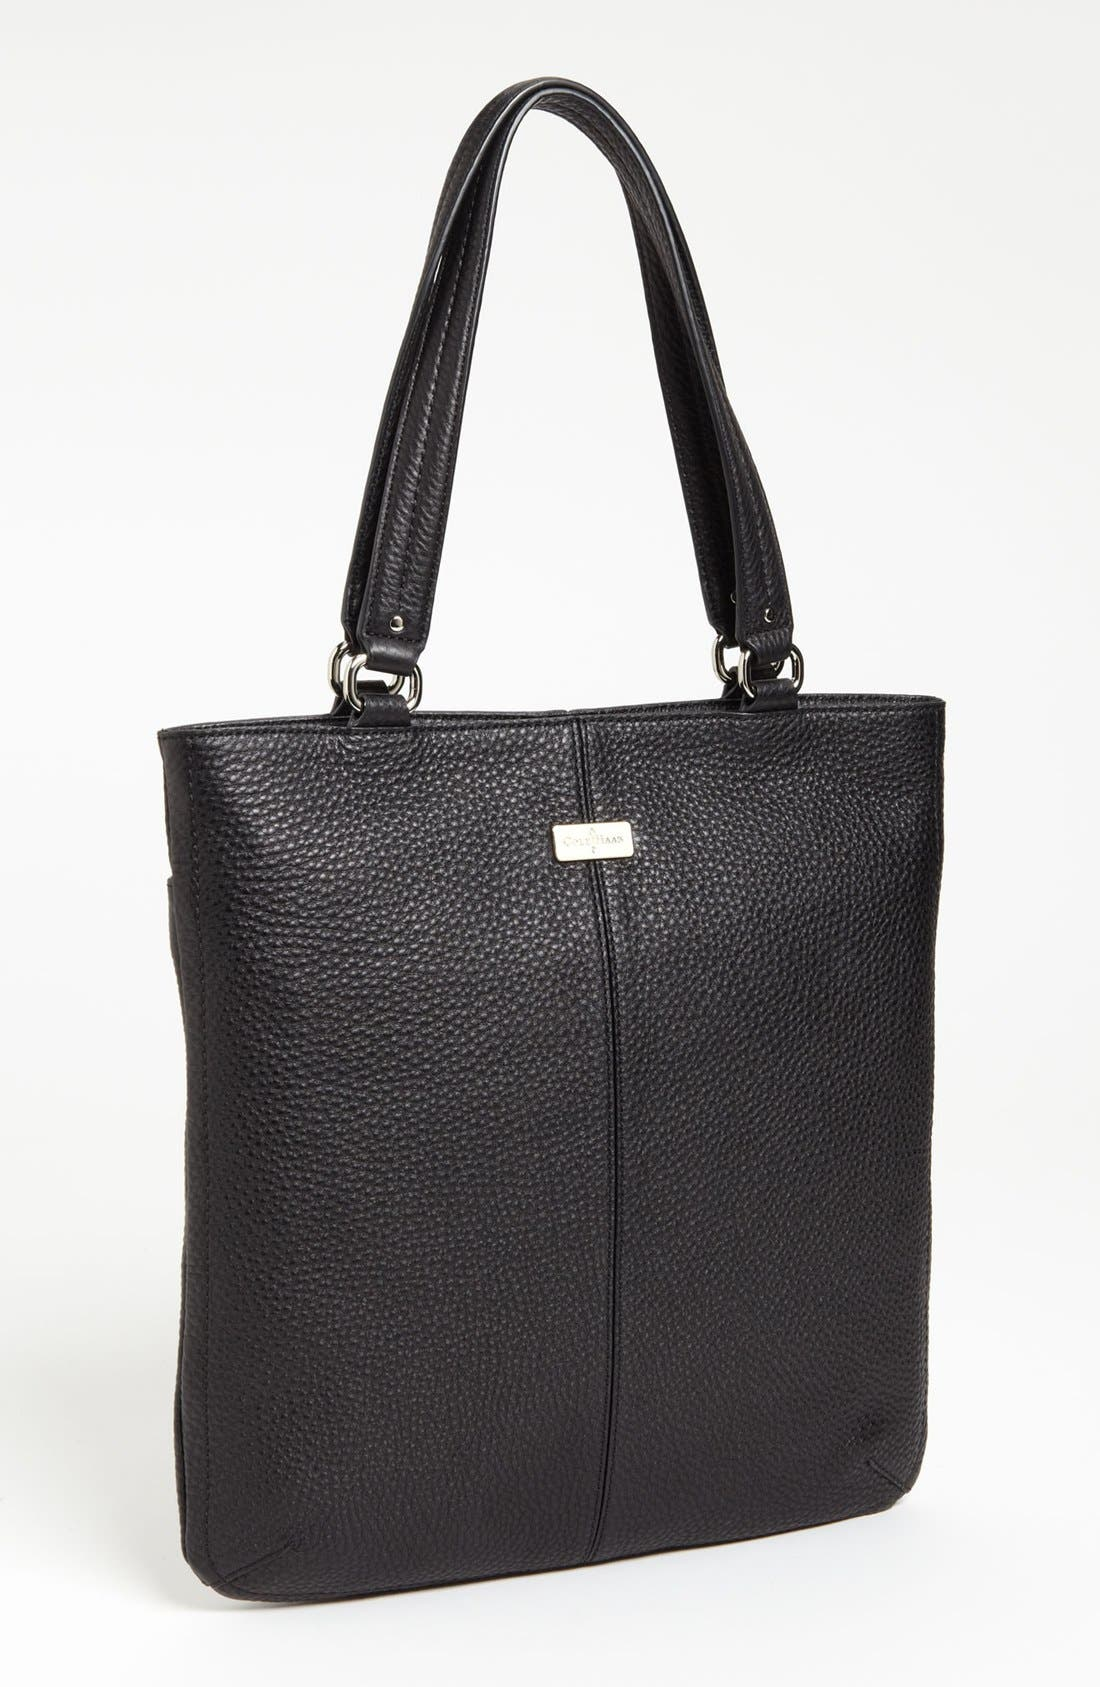 Alternate Image 1 Selected - Cole Haan 'Village - Flat' Tote